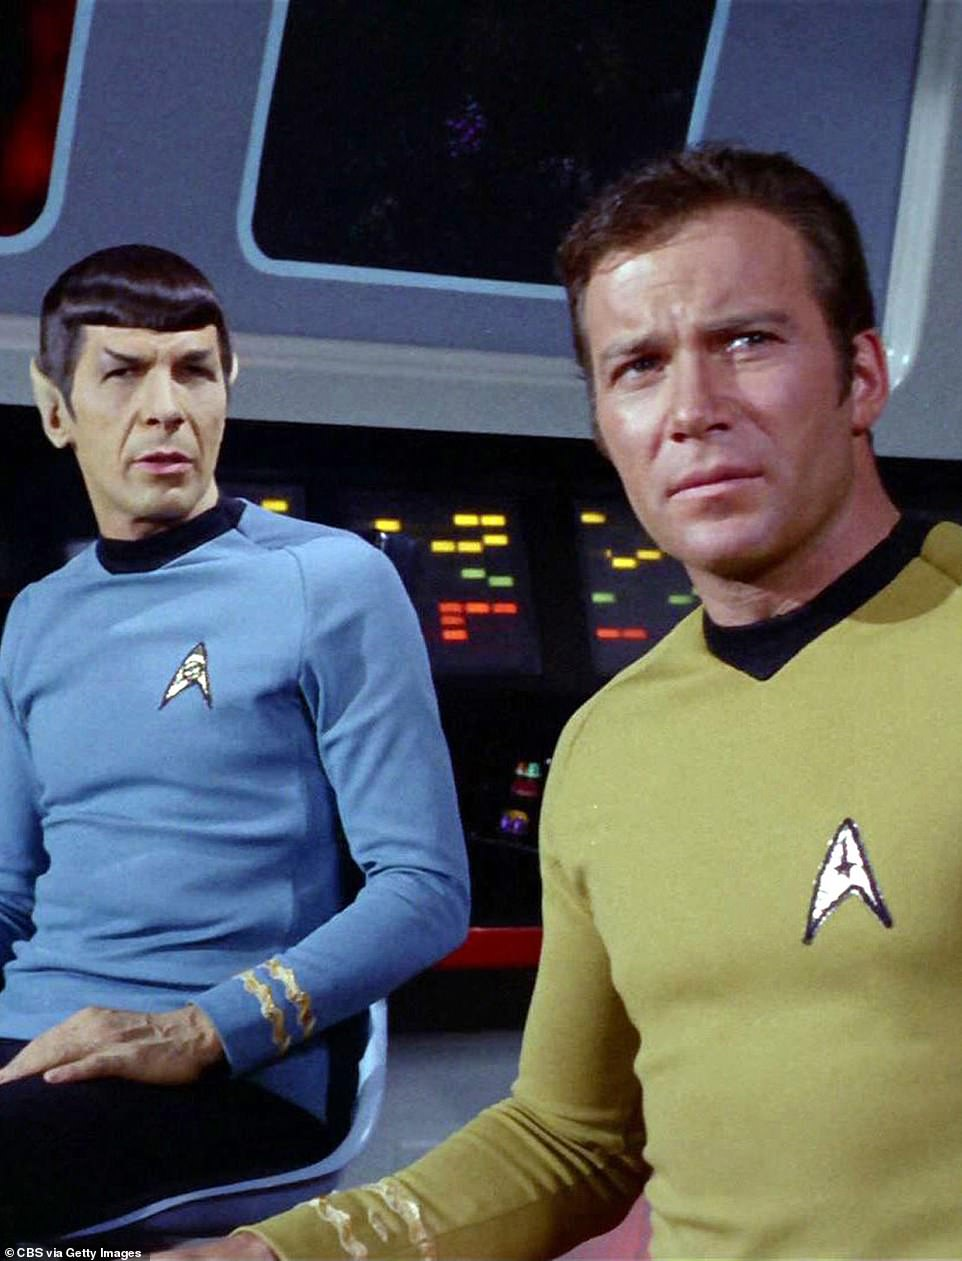 Shatner shot to fame when he took on the role of James T Kirk in the original Star Trek series in 1966. Left is Shatner, along withLeonard Nimoy as Mr Spock